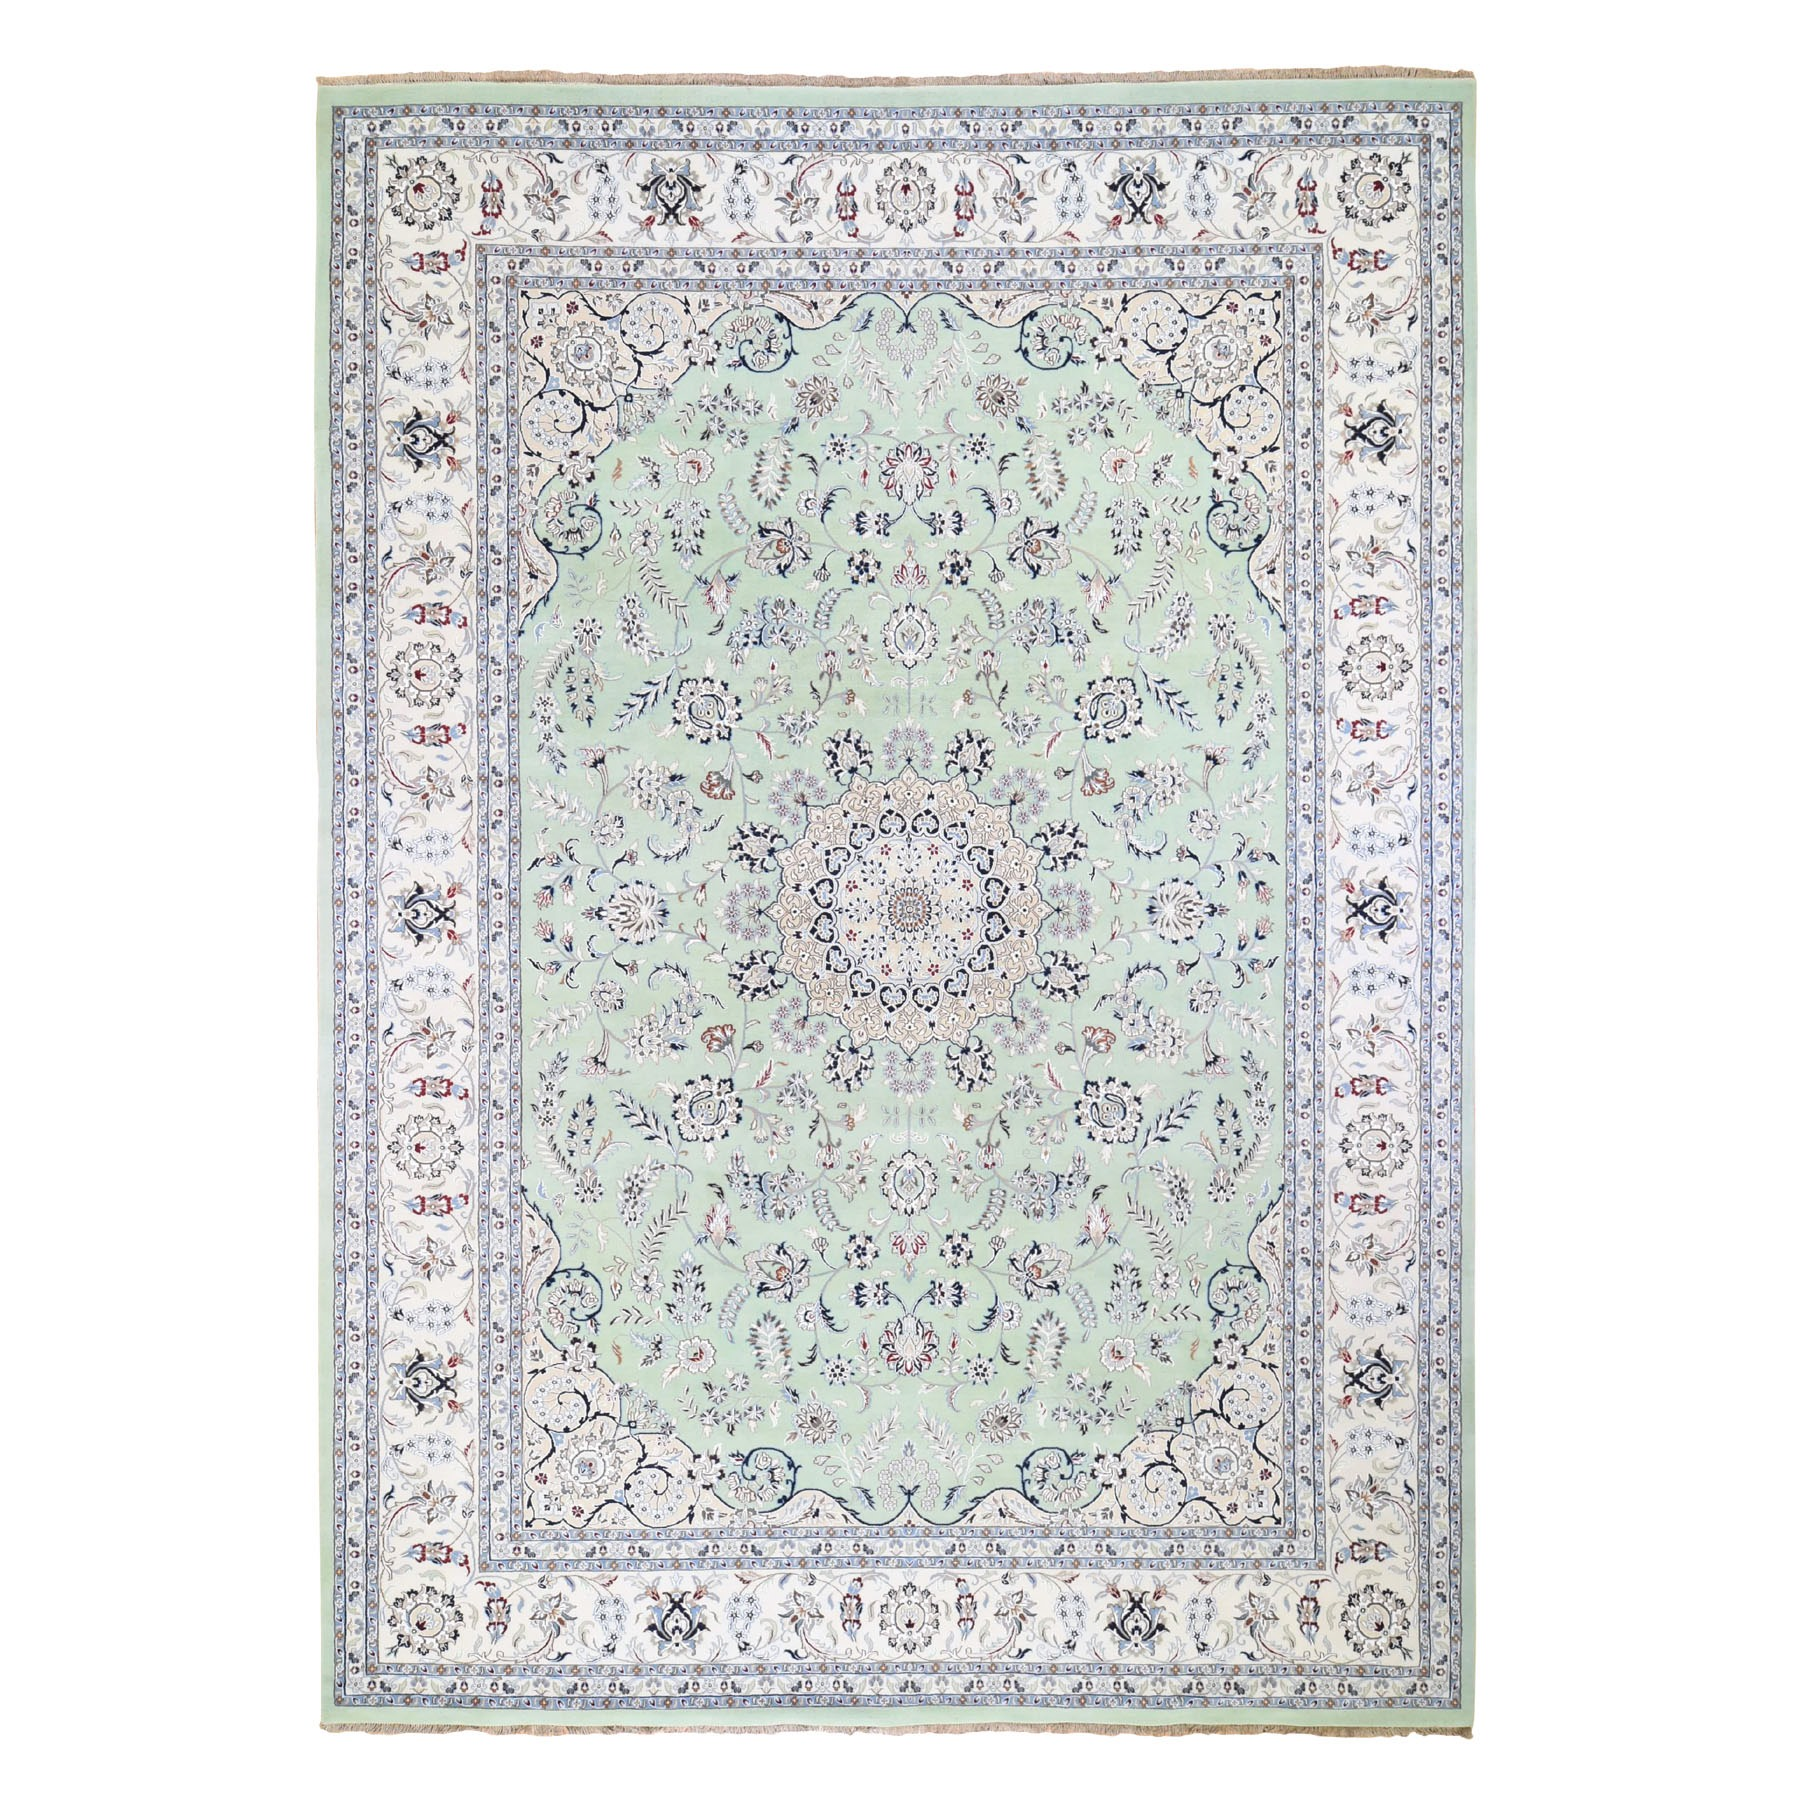 10'X14' Wool And Silk 250 Kpsi Light Green Nain Hand-Knotted Oriental Rug moad89b9